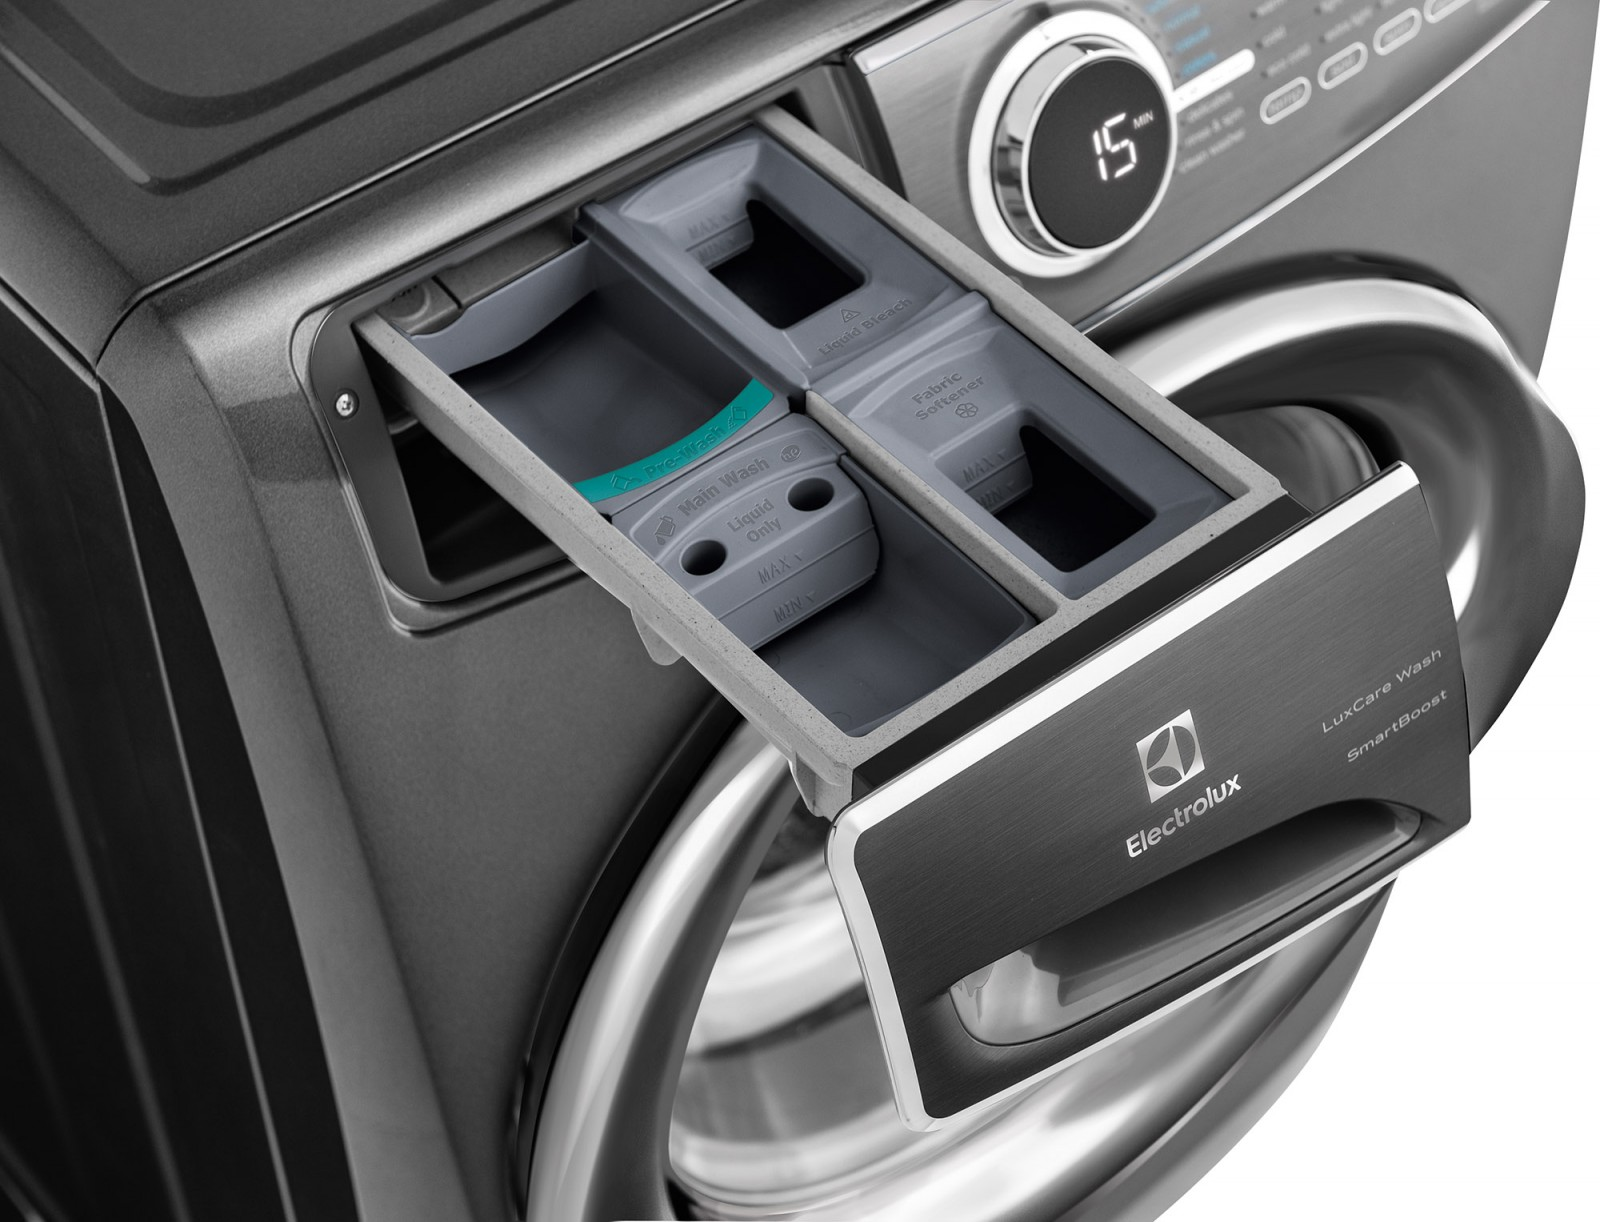 electrolux washer and dryer. Electrolux Perfect Steam™ Washer With LuxCare™ Wash And SmartBoost™ Dryer E